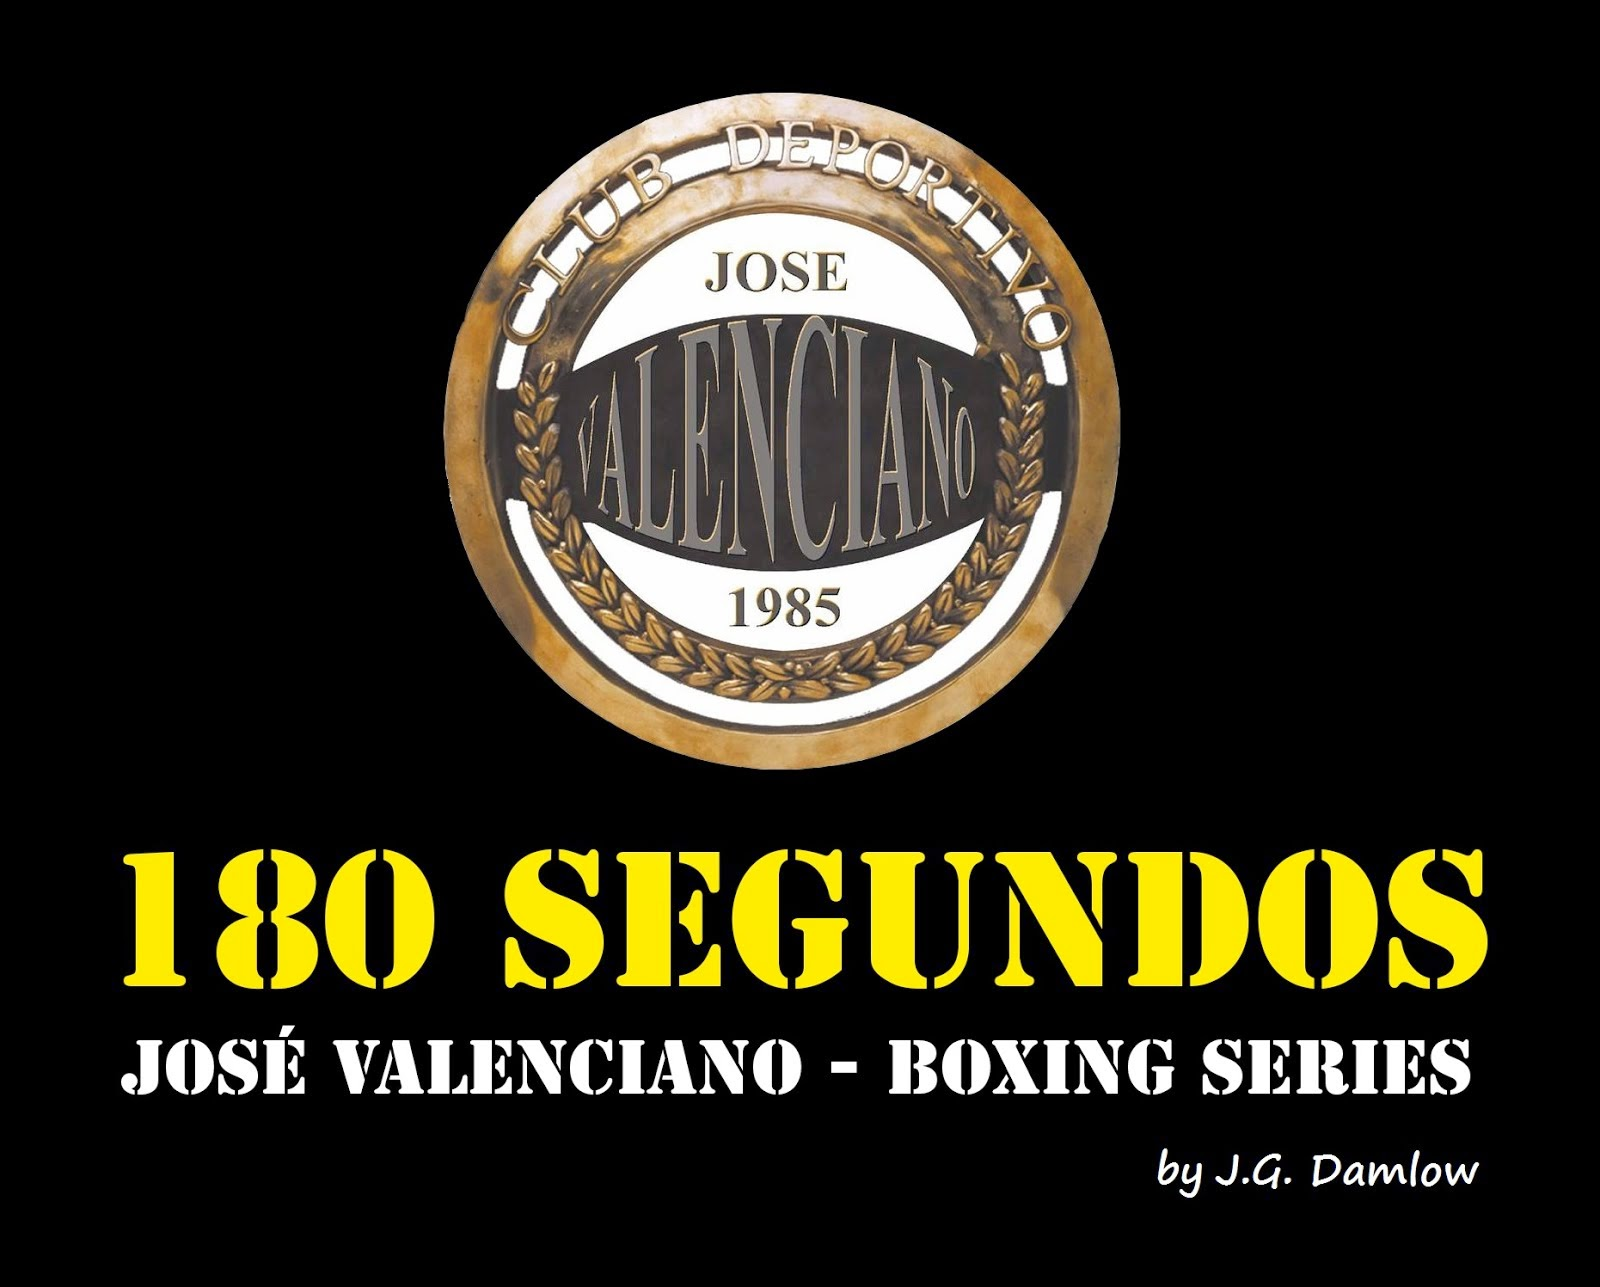 Boxing Series